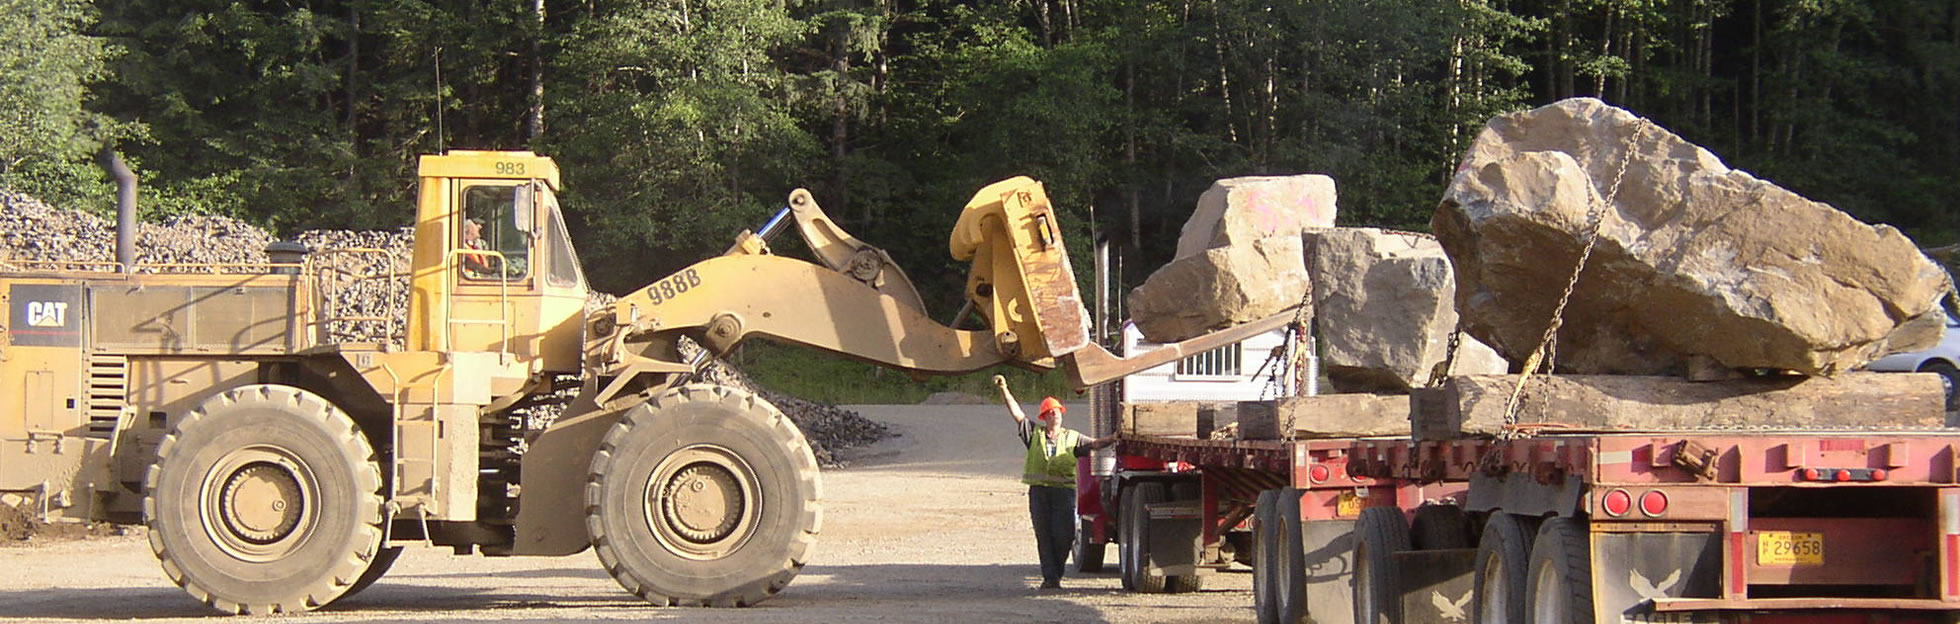 articulated loader placing large rock on truck